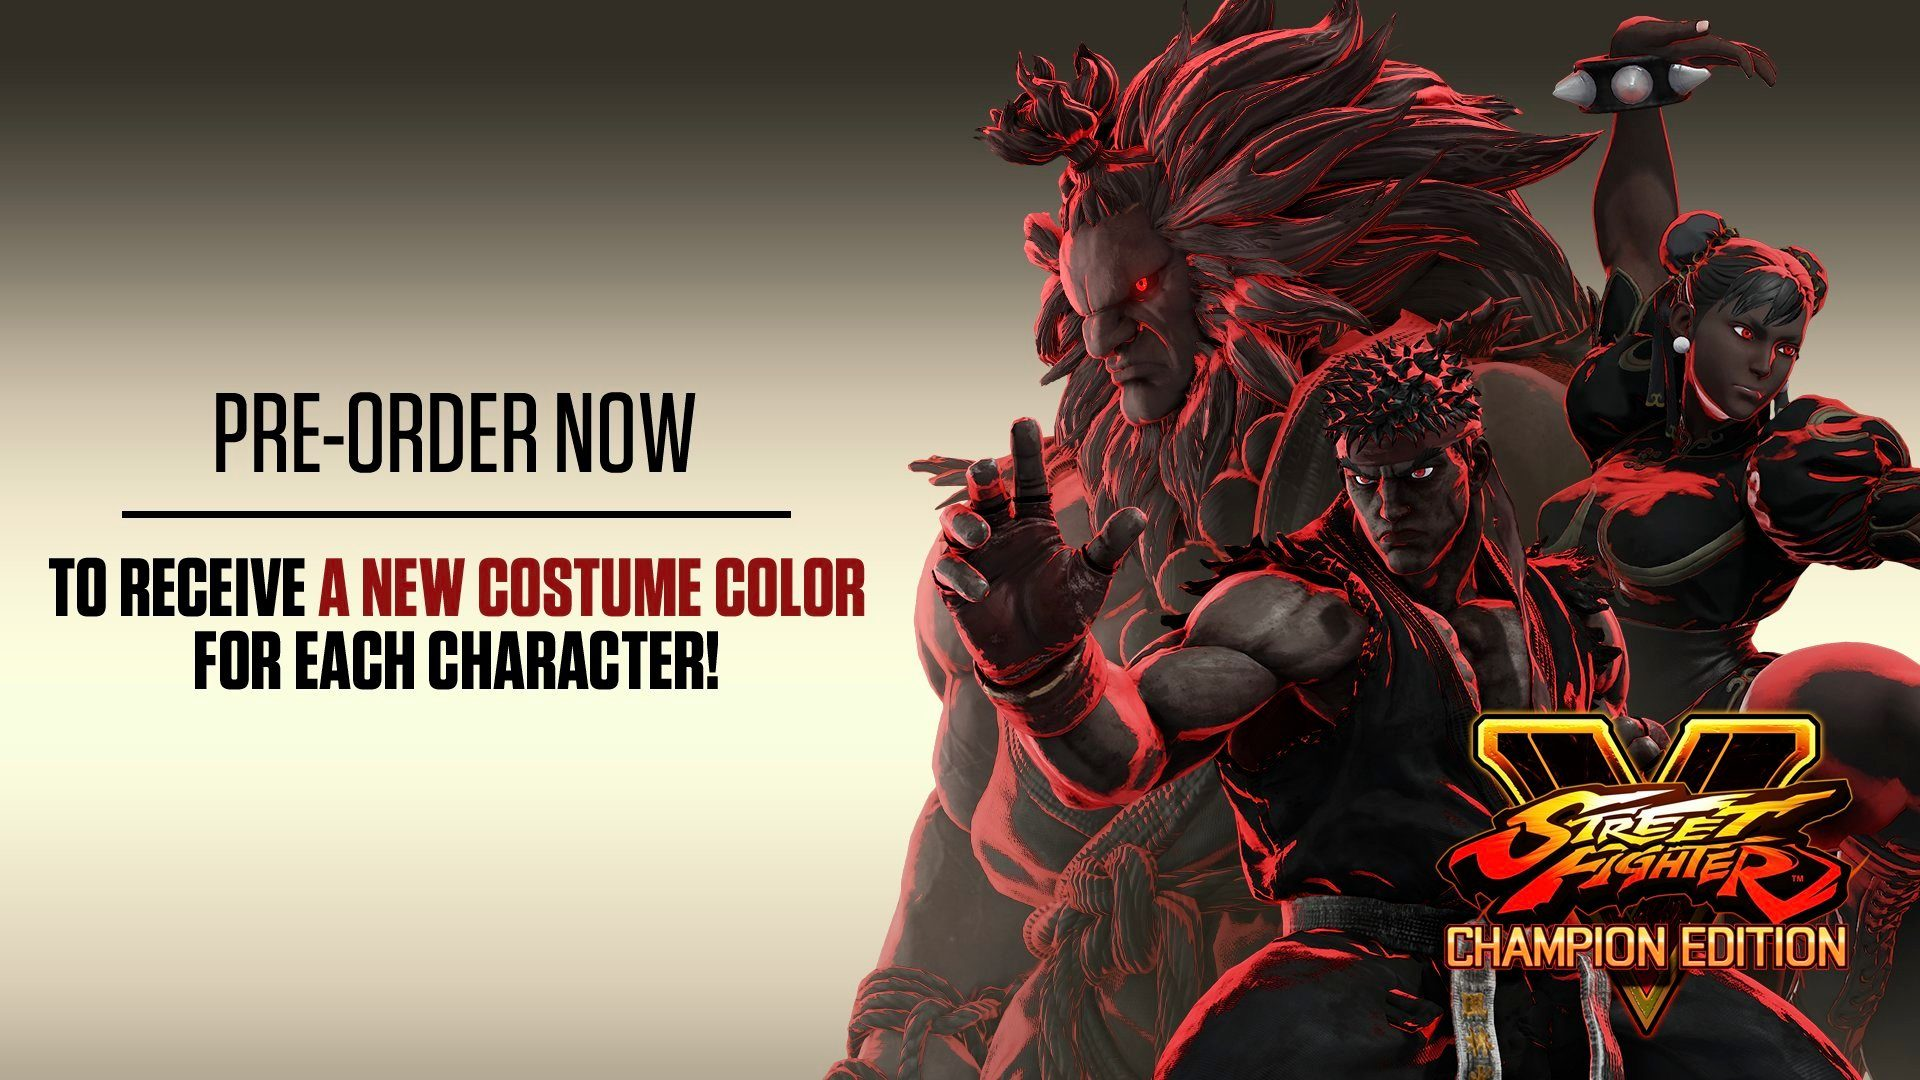 Street Fighter V Champion Edition Game Preorders